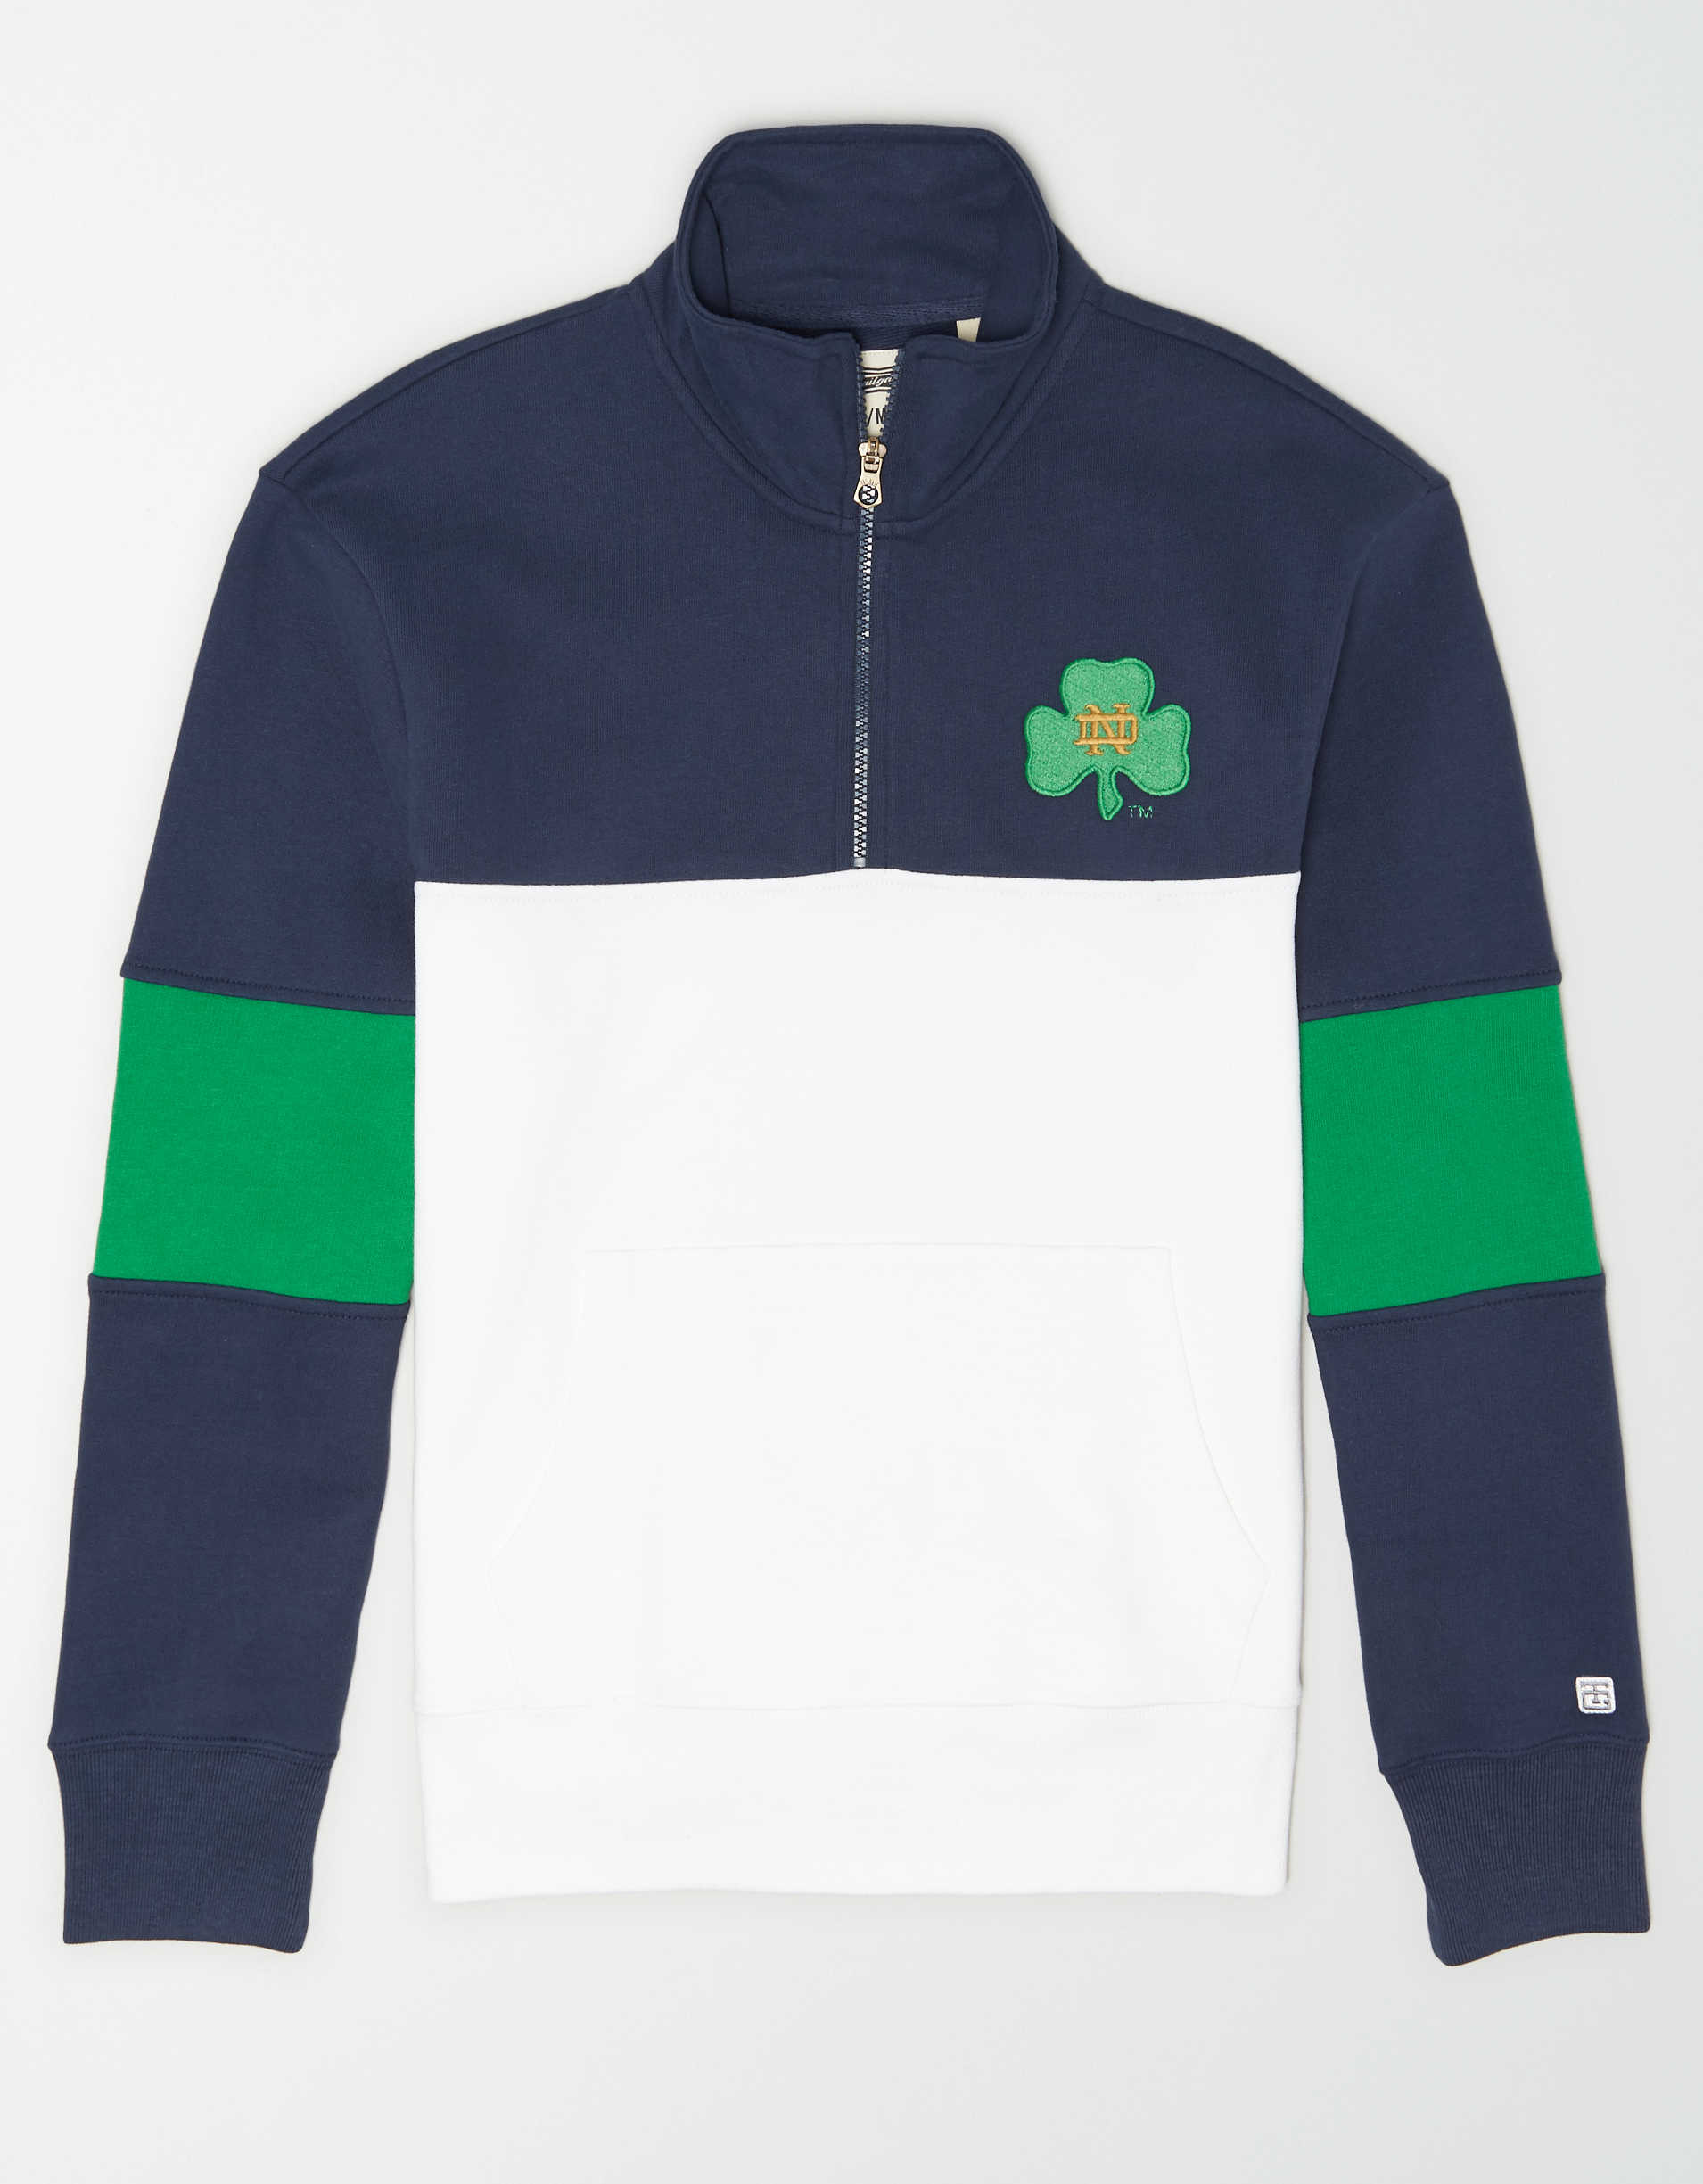 Tailgate Men's Notre Dame Irish Quarter-Zip Sweatshirt